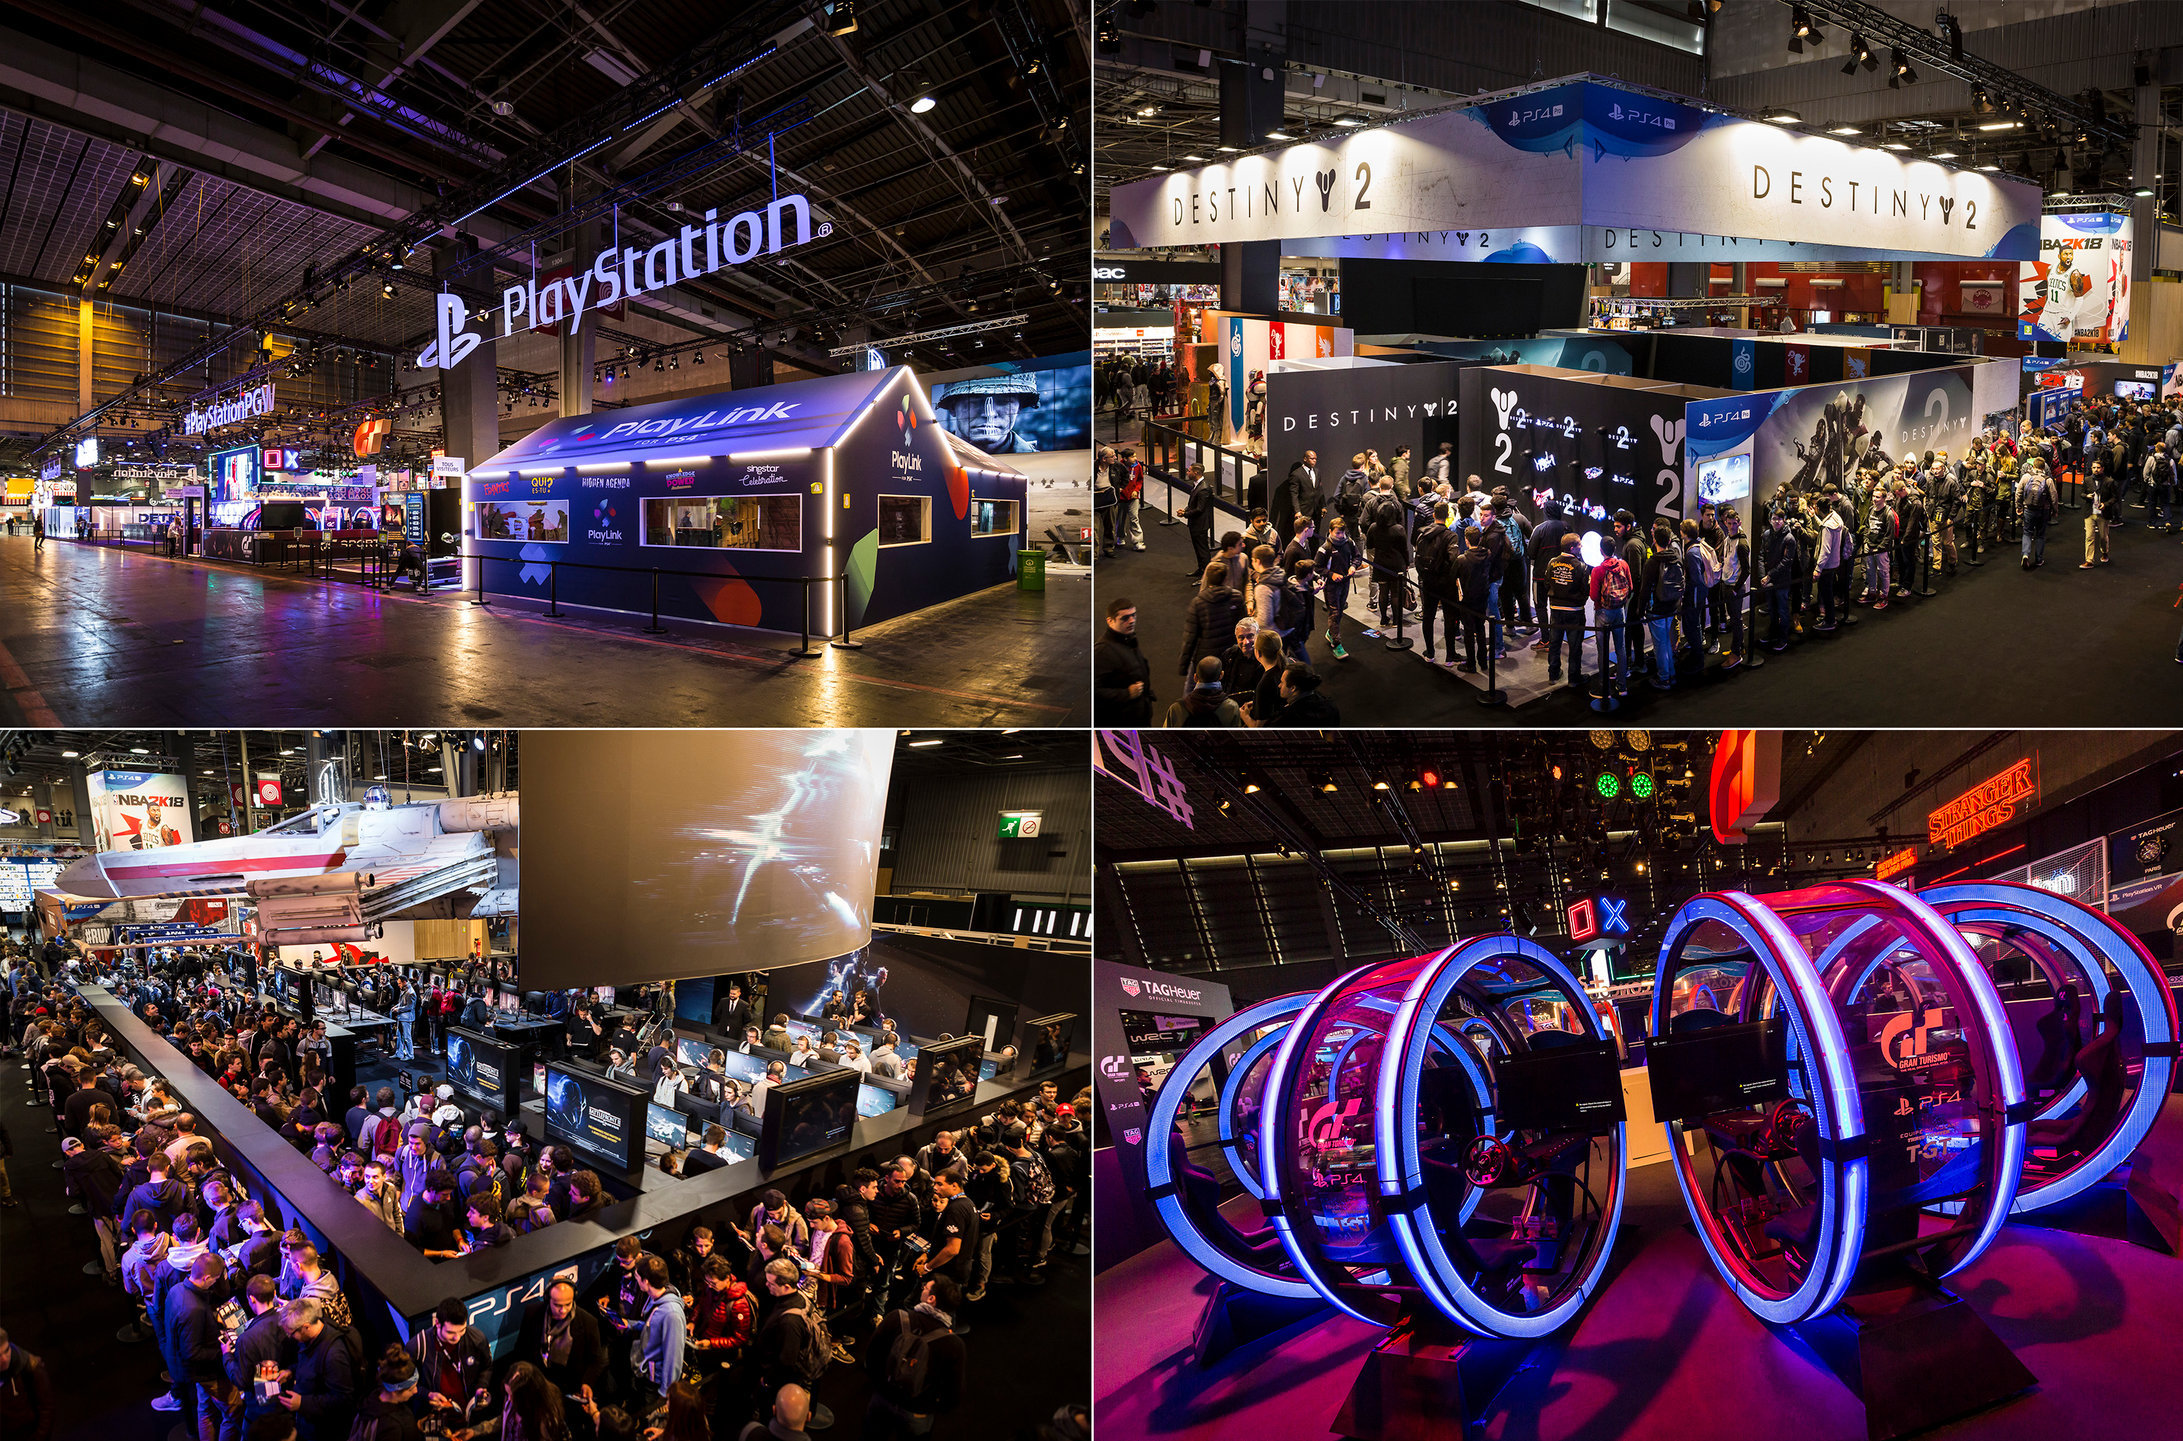 Playstation-ShowDay-PGW2017-2809-HighRes.jpg